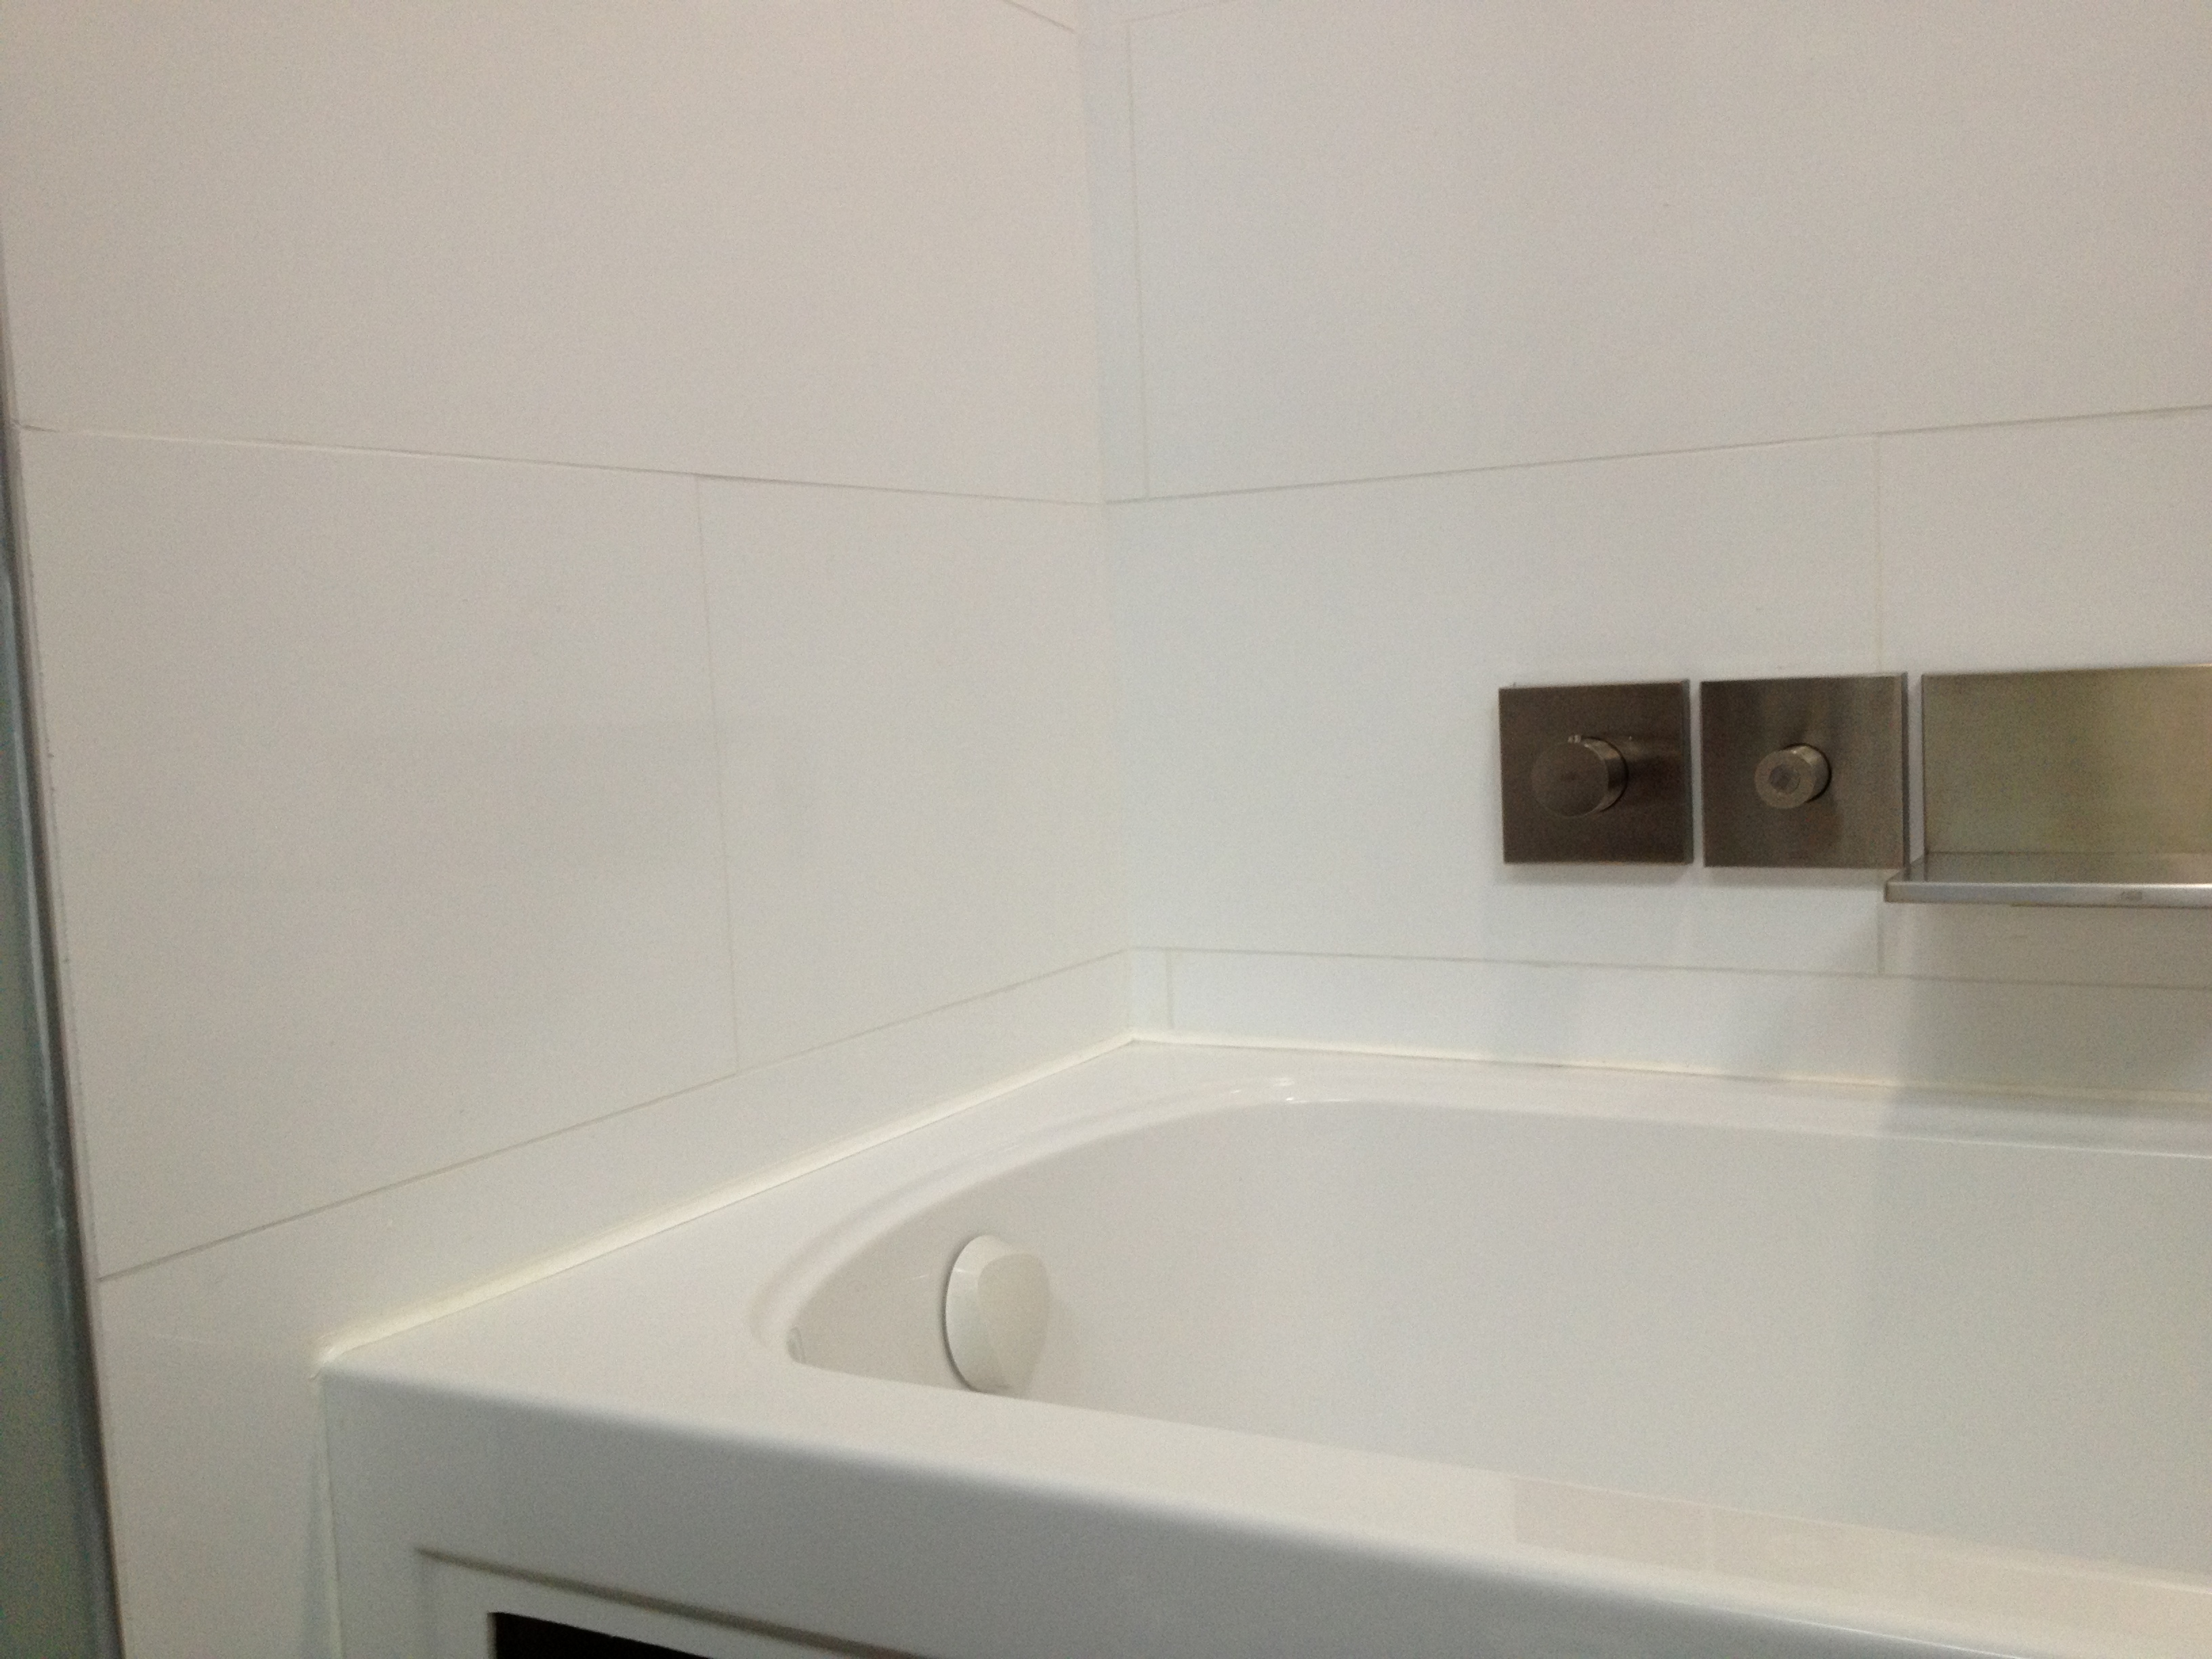 Clean, white bathroom tile – Lux Design and Contracting